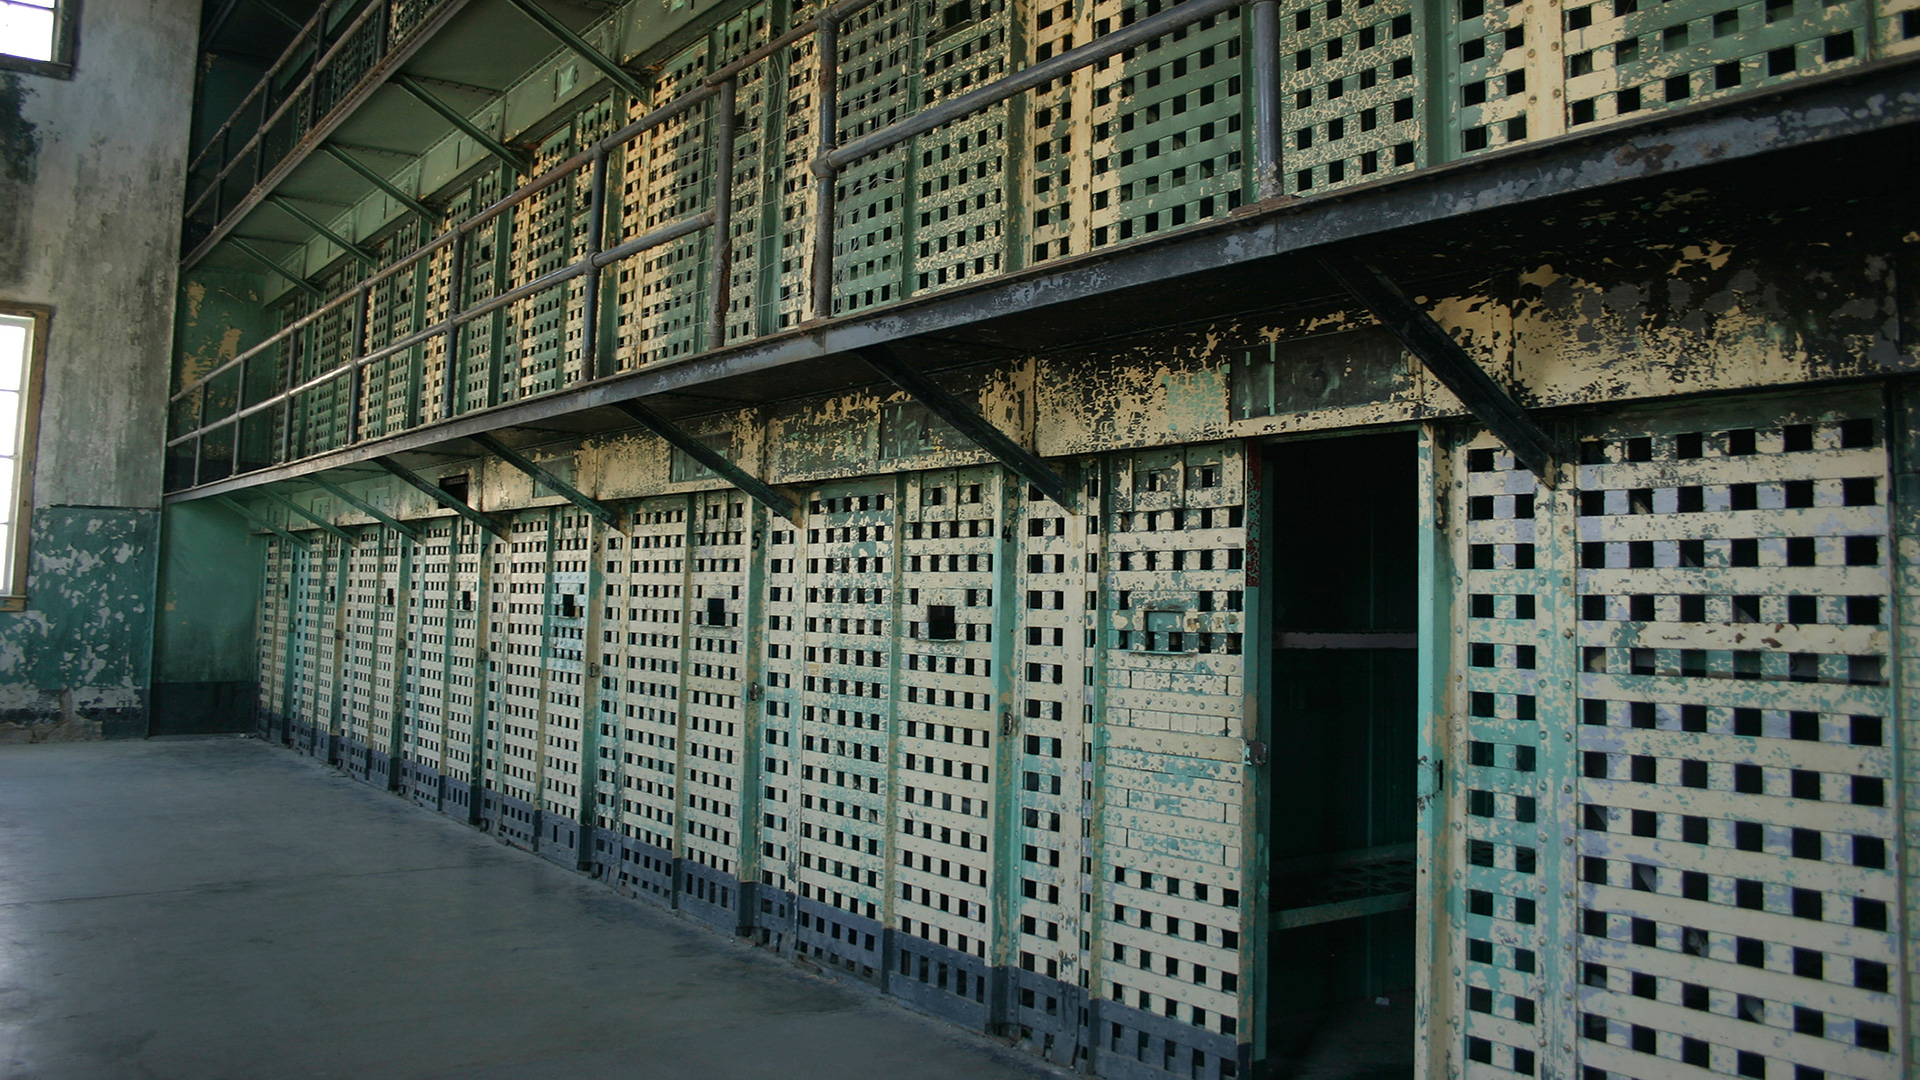 Maximum security cells at the Old Idaho State Penitentiary.